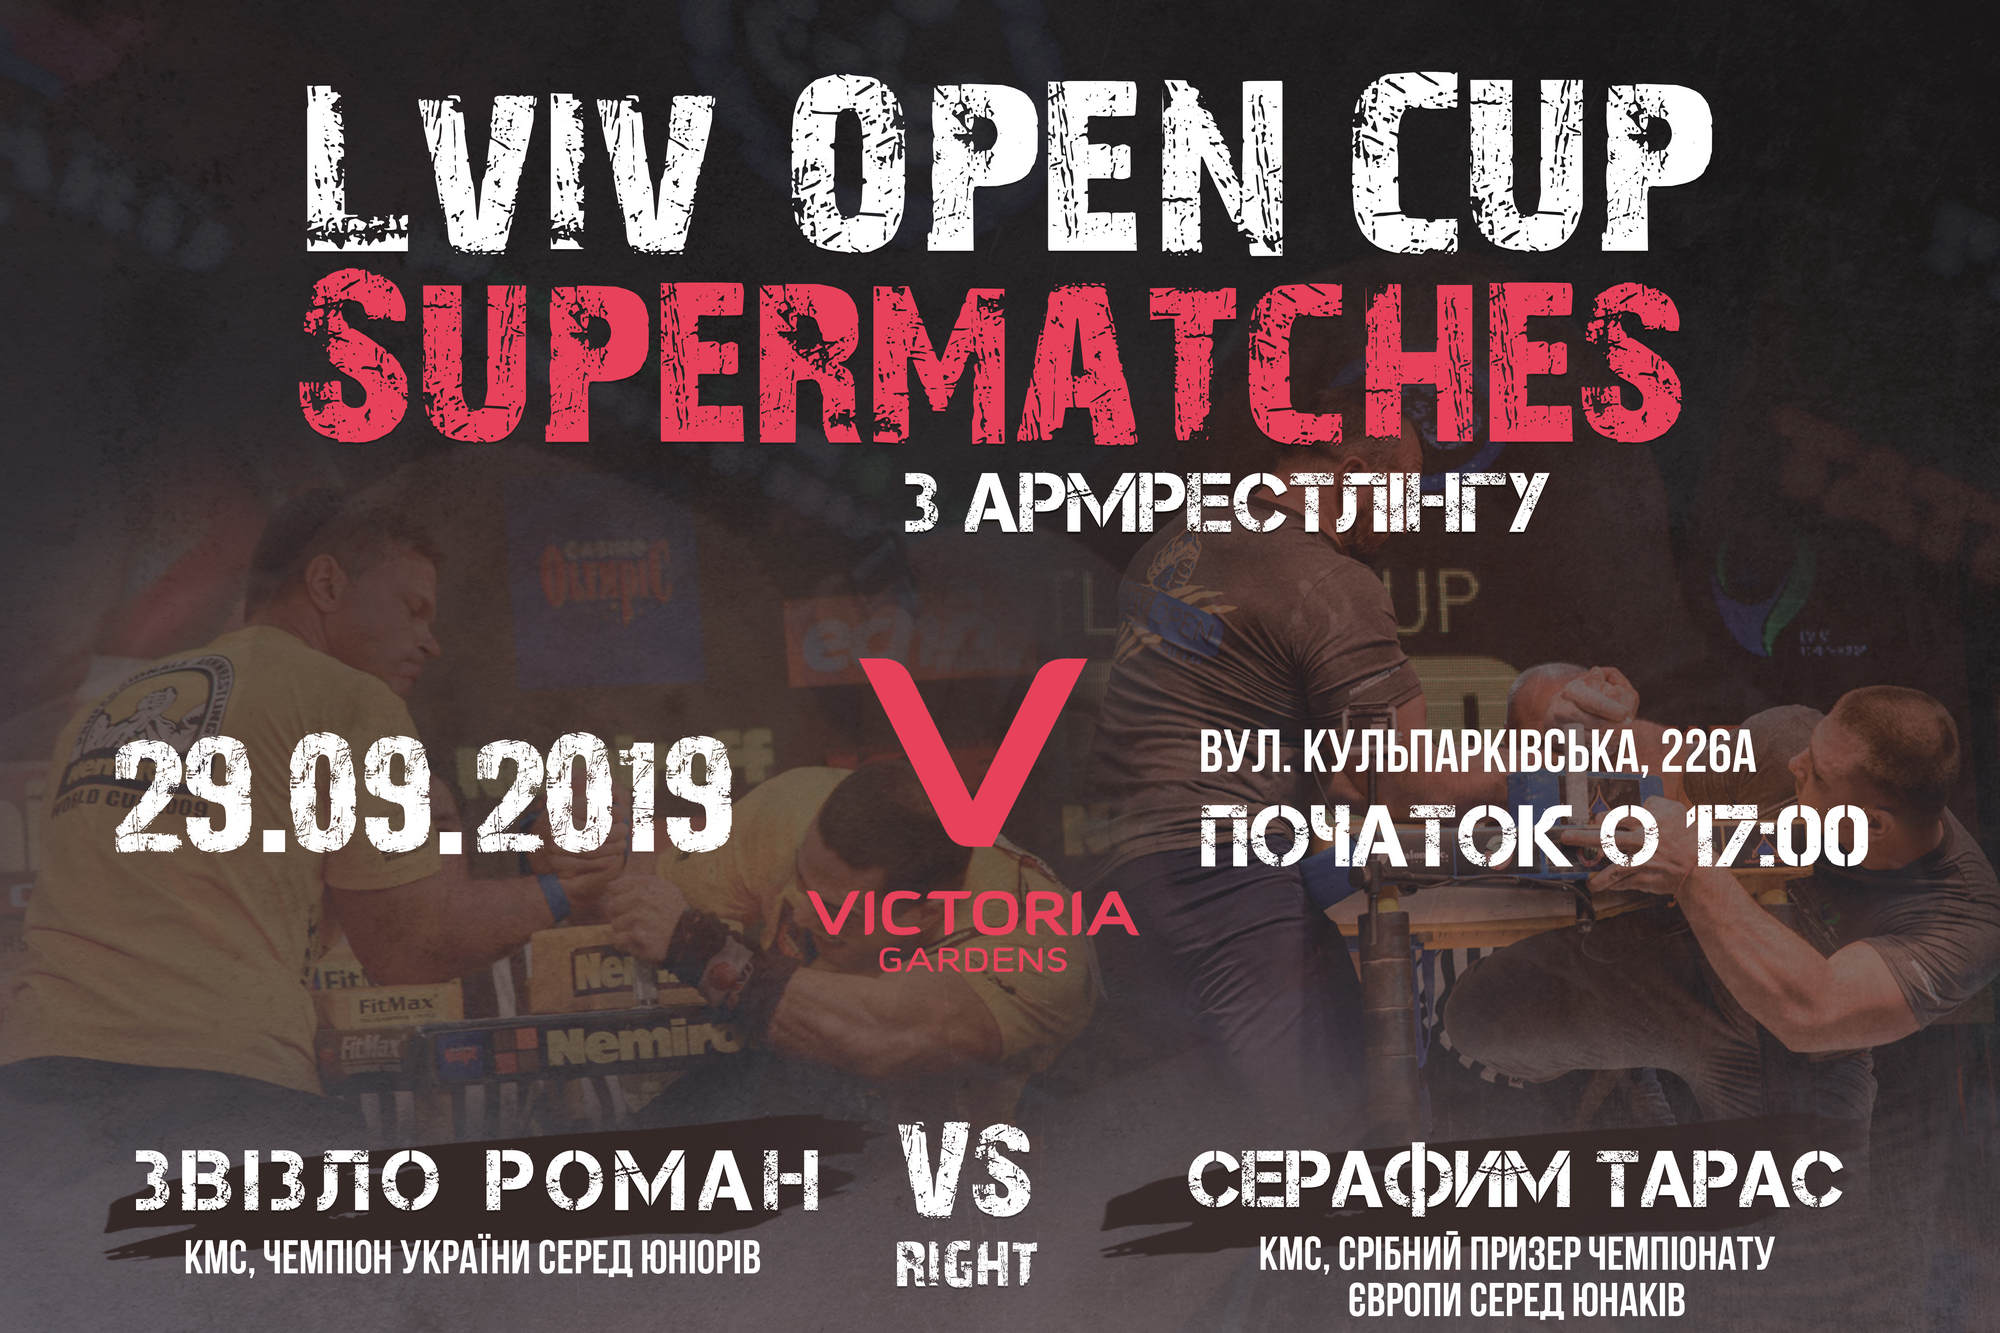 poster_supermatches_stage_crop.jpg